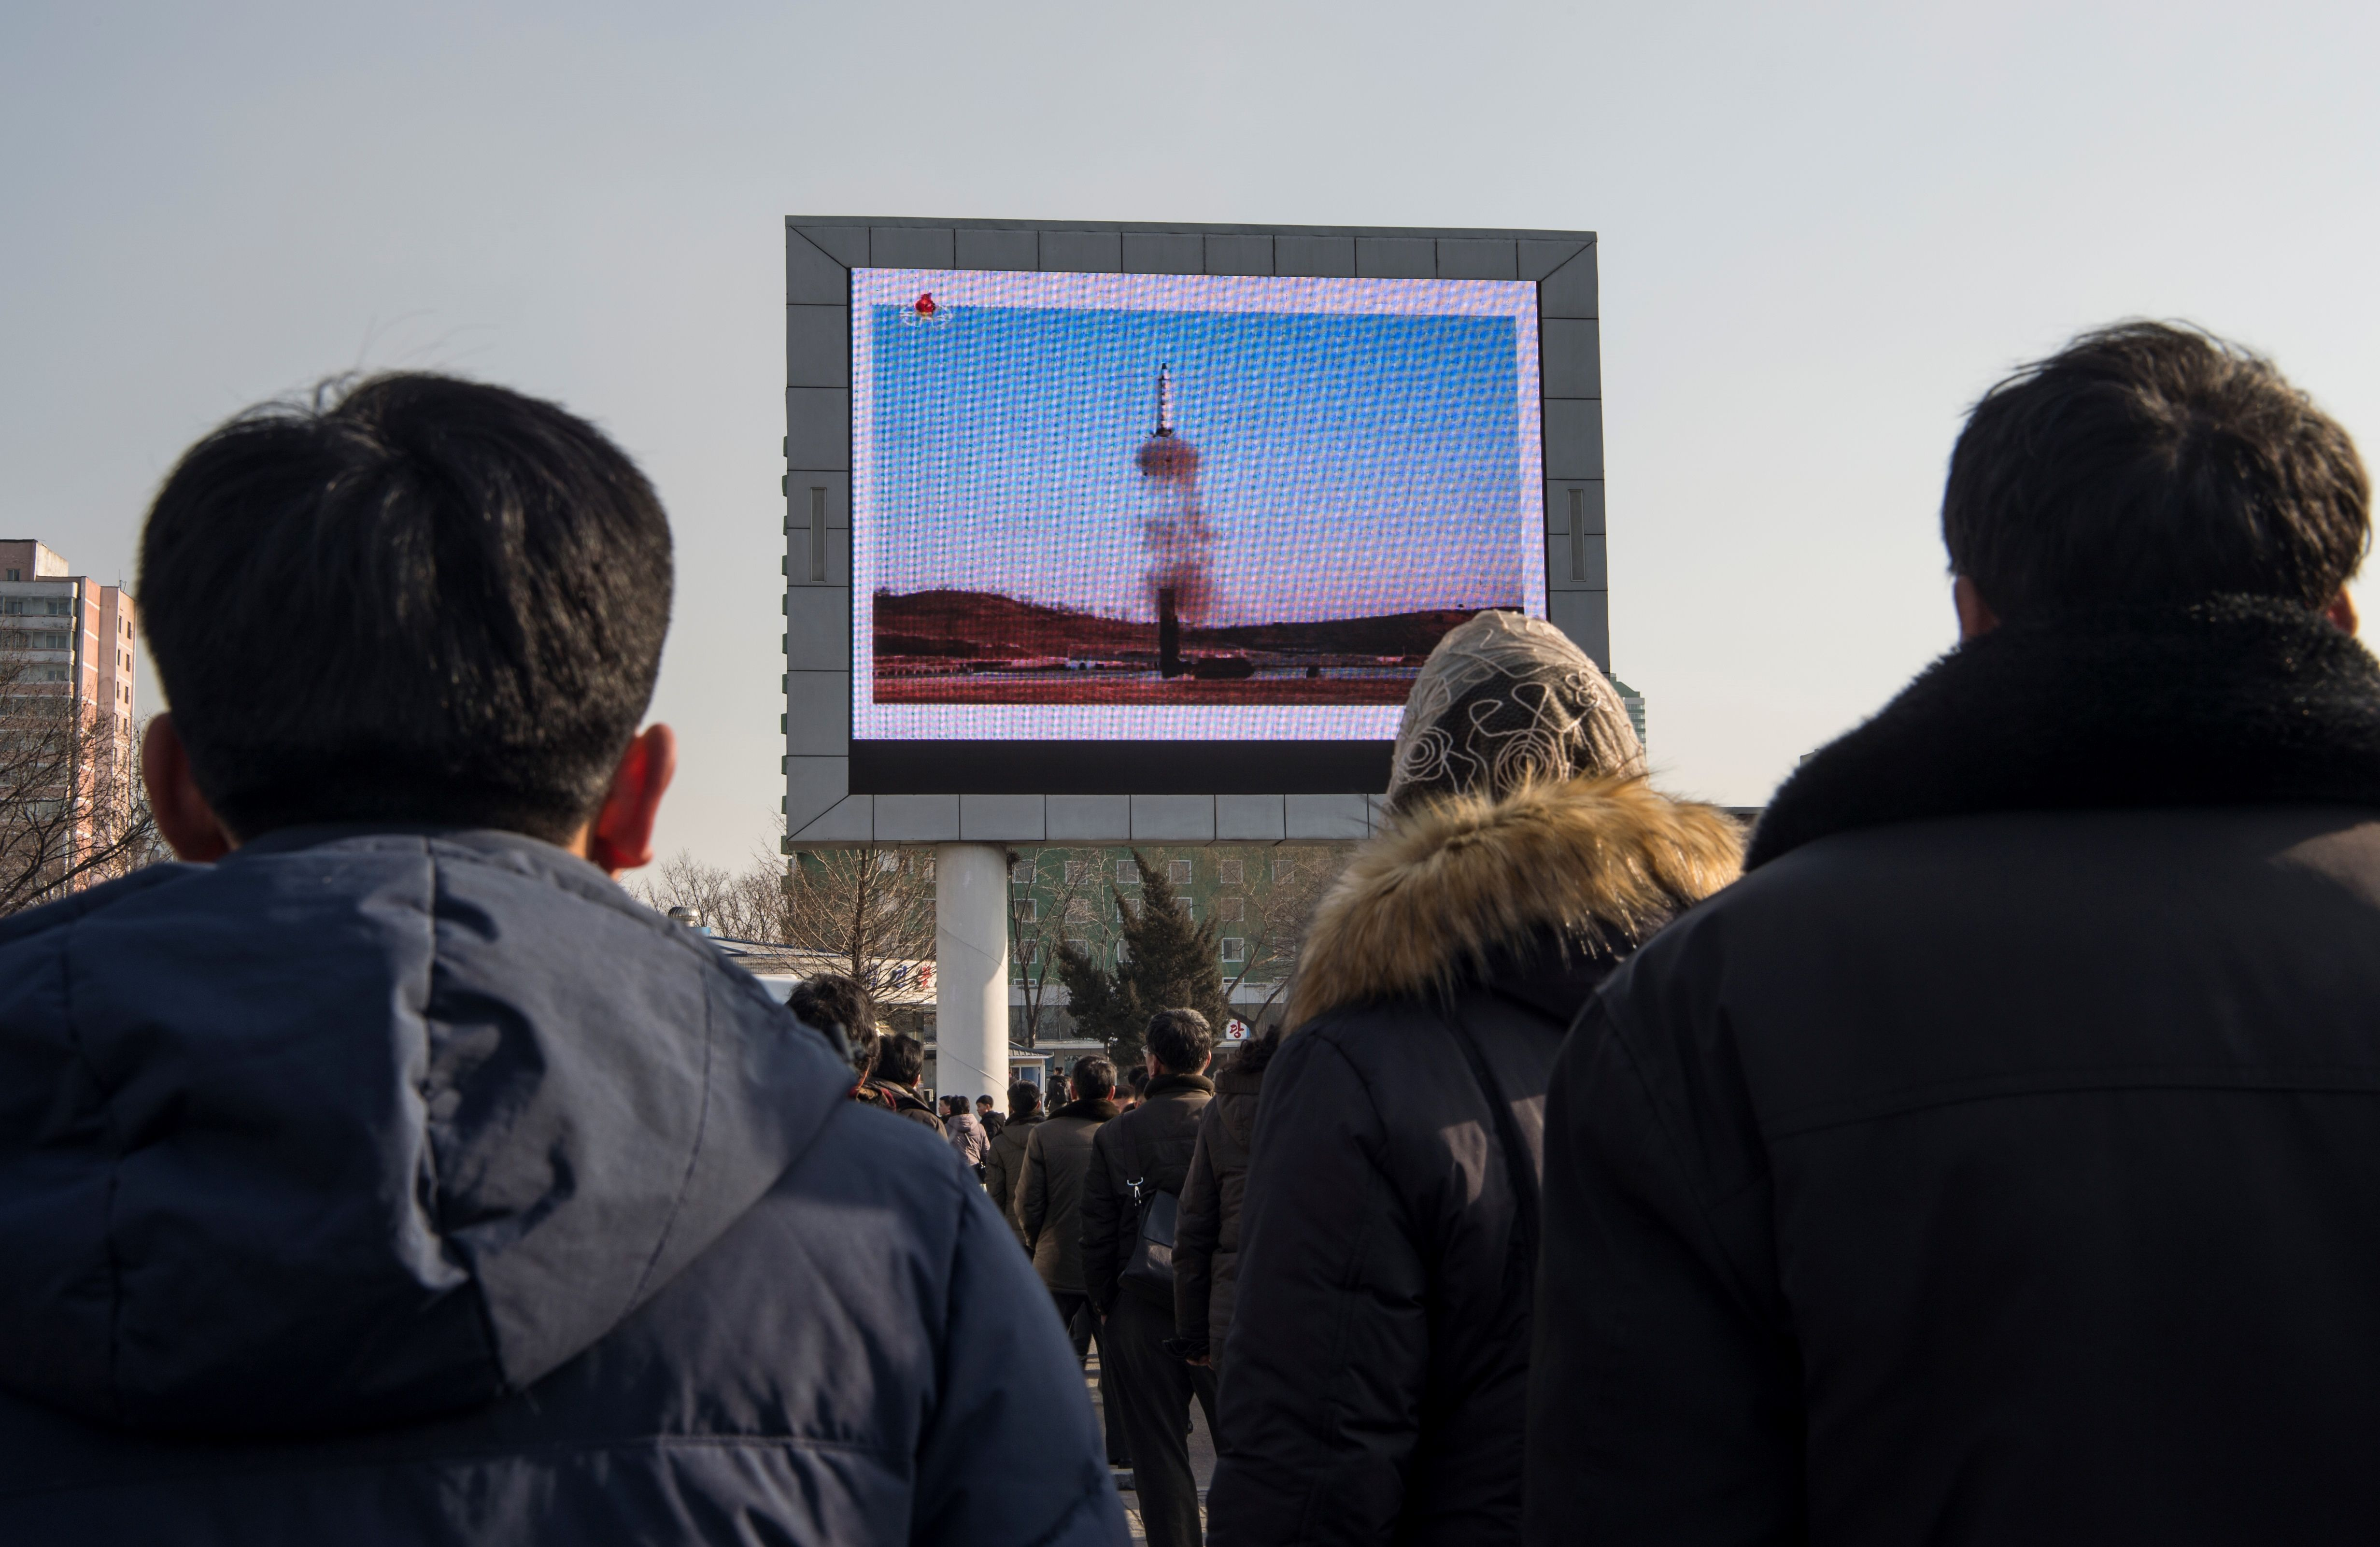 This photo taken on Feb. 13, 2017 shows people in Pyongyang watching a public broadcast about the launch of a medium long-range ballistic missile.